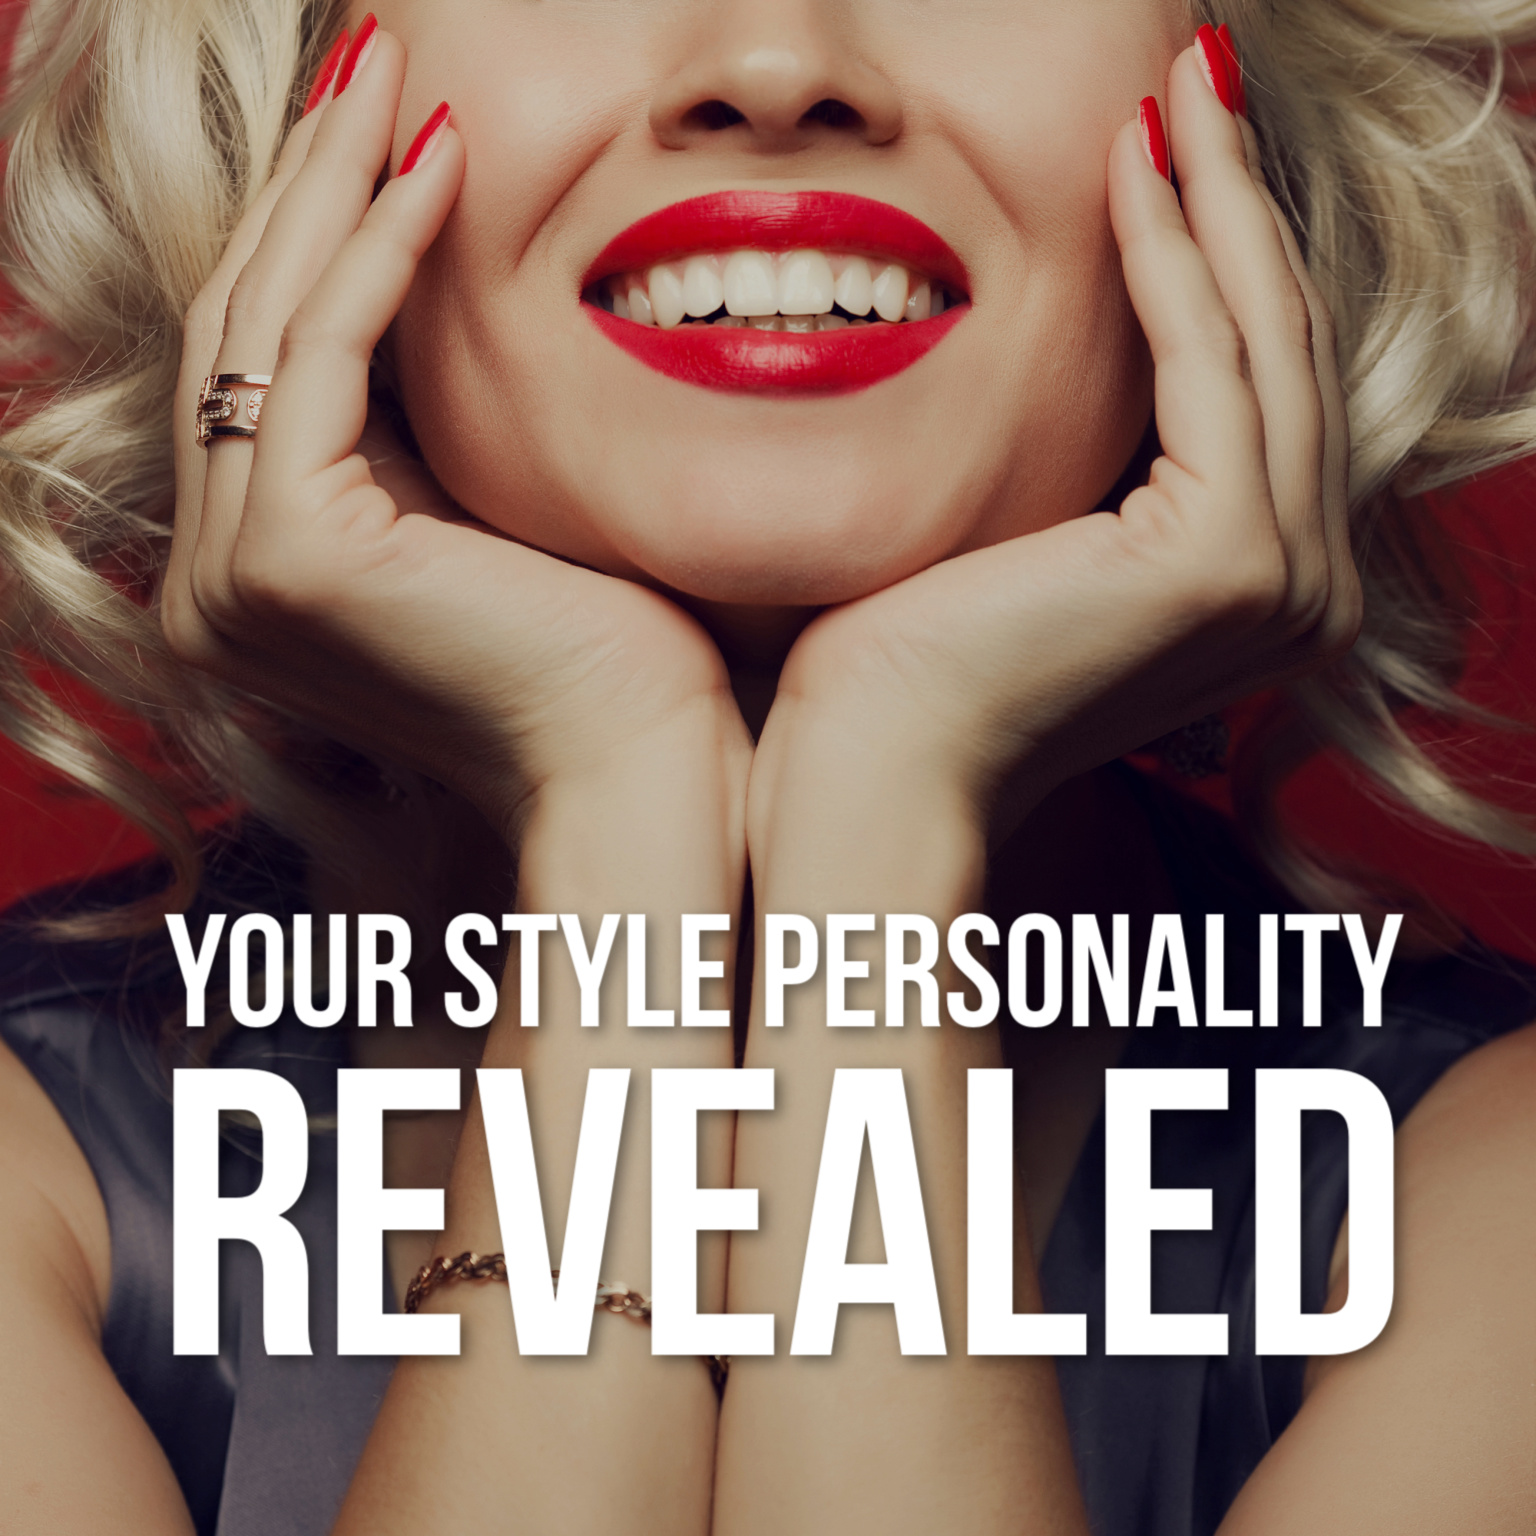 YOUR STYLE PERSONALITY REVEALED